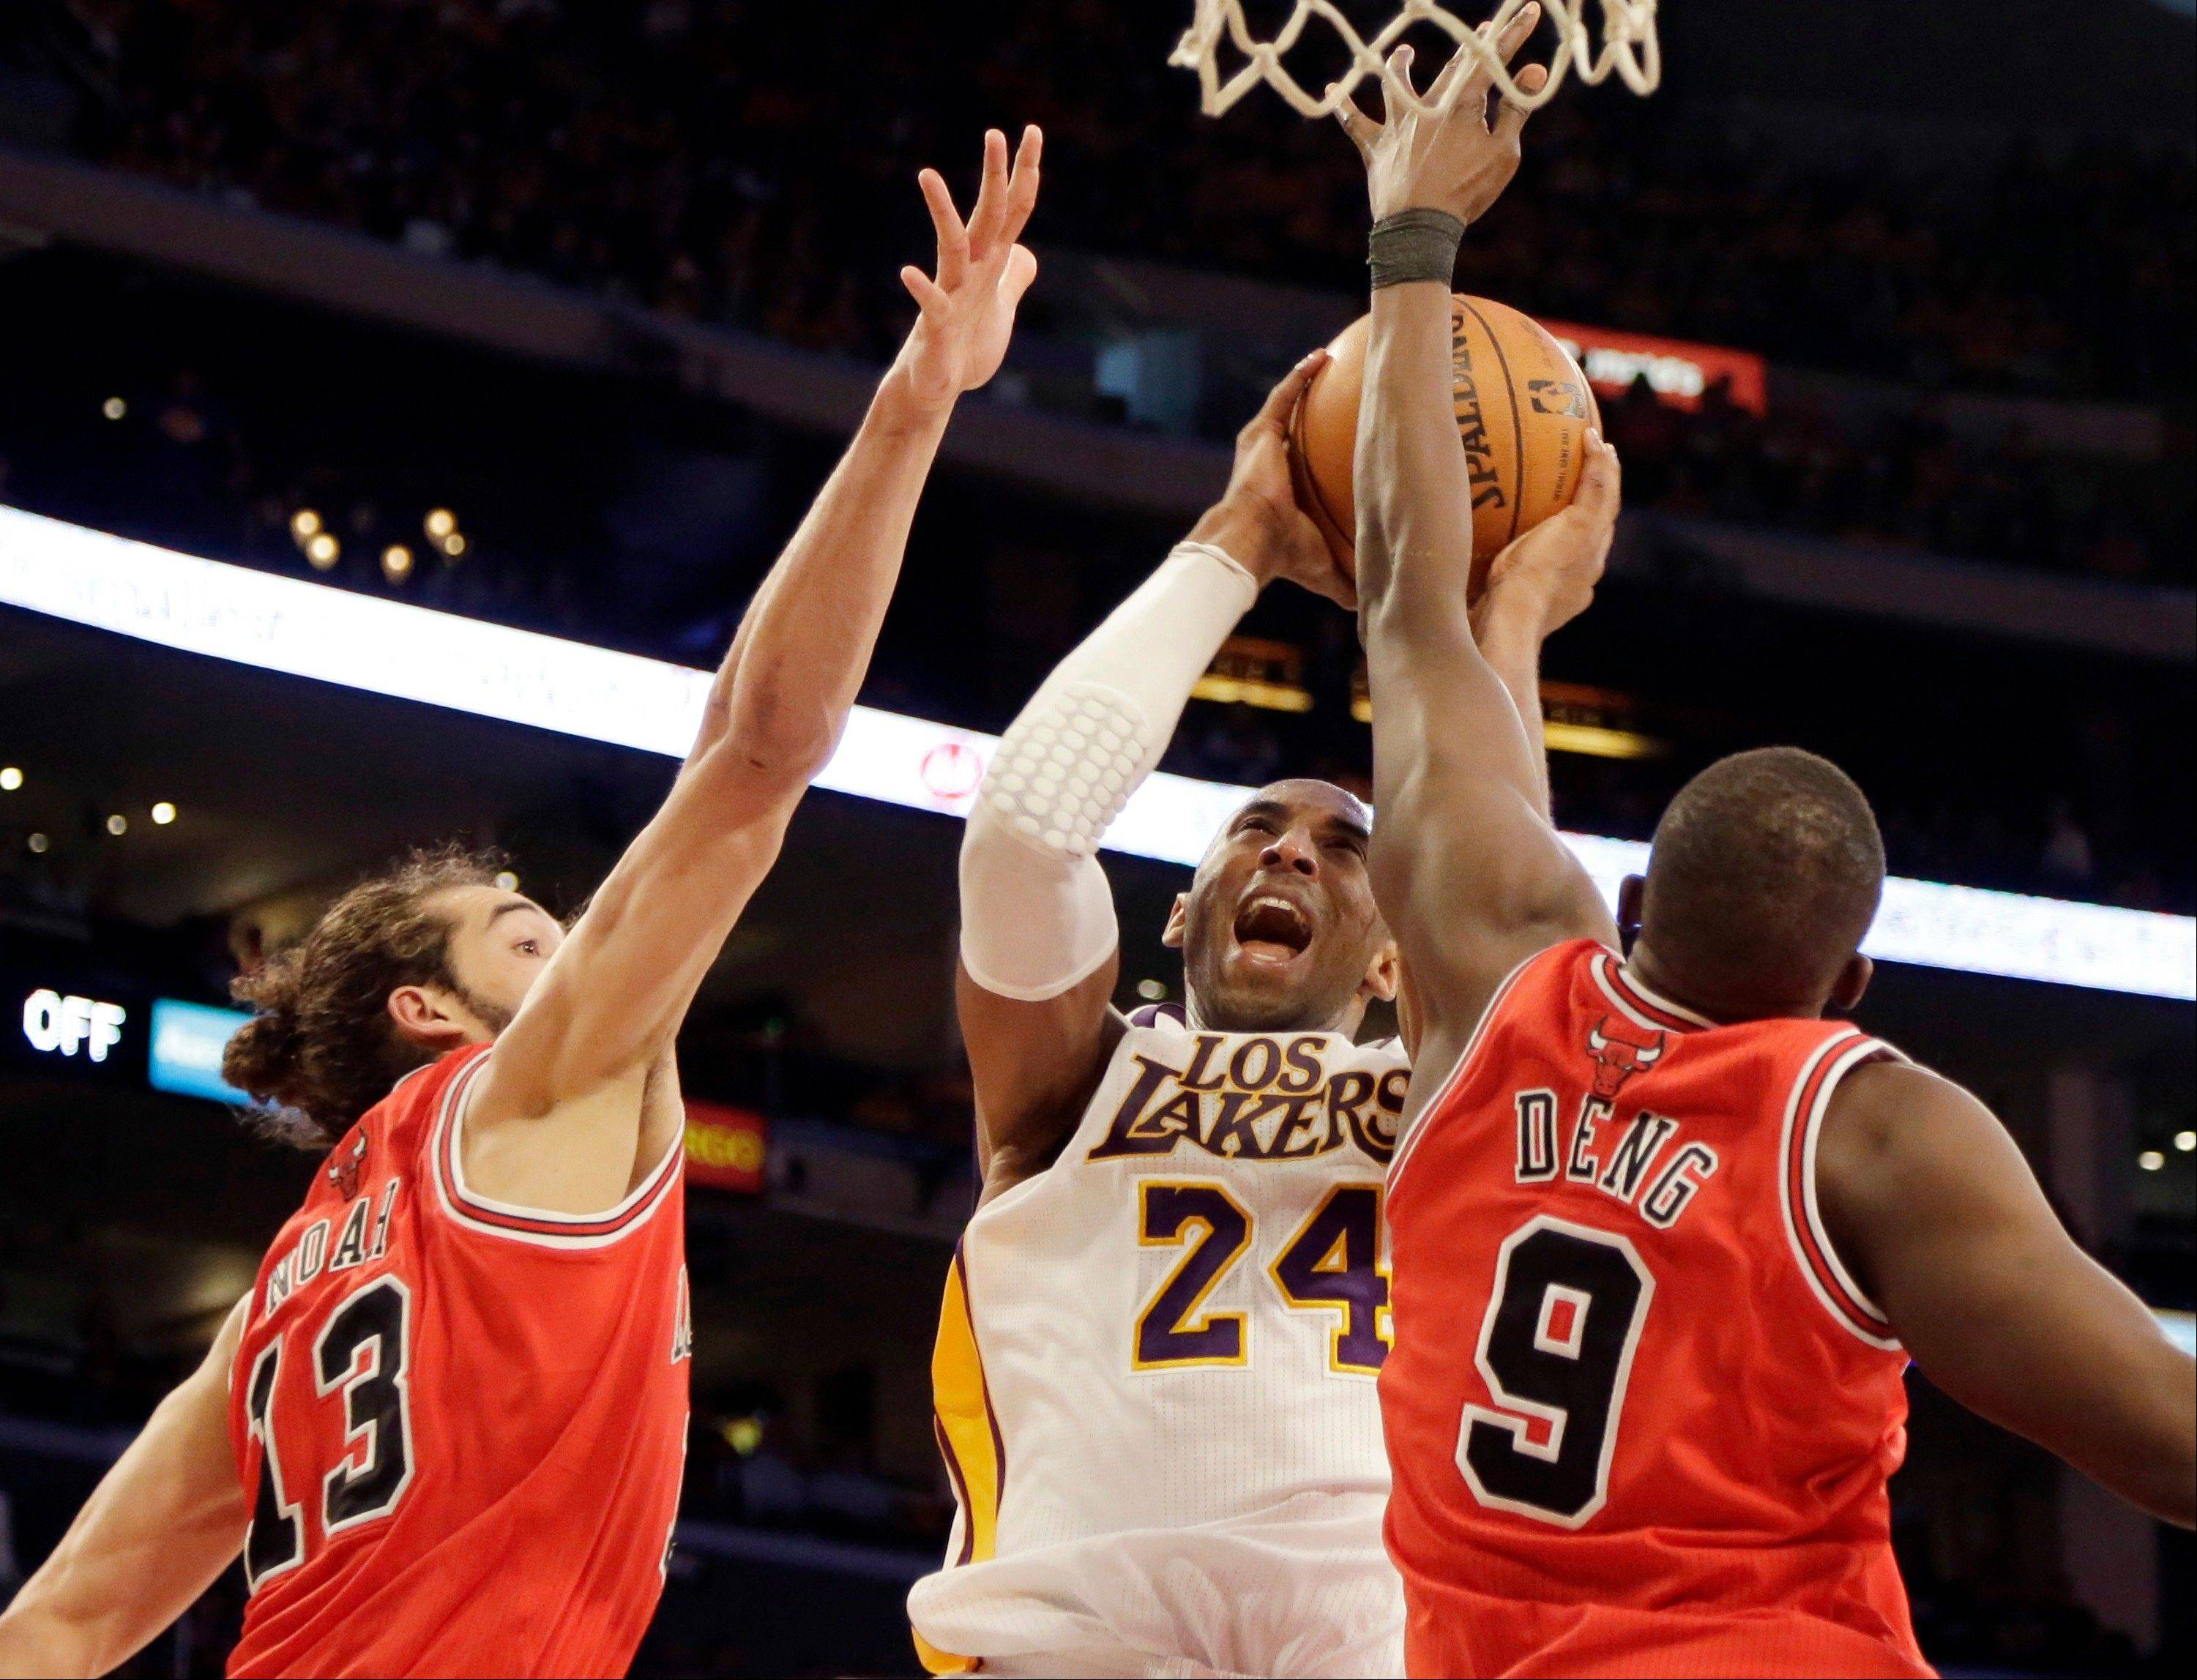 Los Angeles Lakers guard Kobe Bryant shoots as he is defended by Chicago Bulls center Joakim Noah and forward Luol Deng in the first half of an NBA basketball game in Los Angeles Sunday, March 10, 2013.